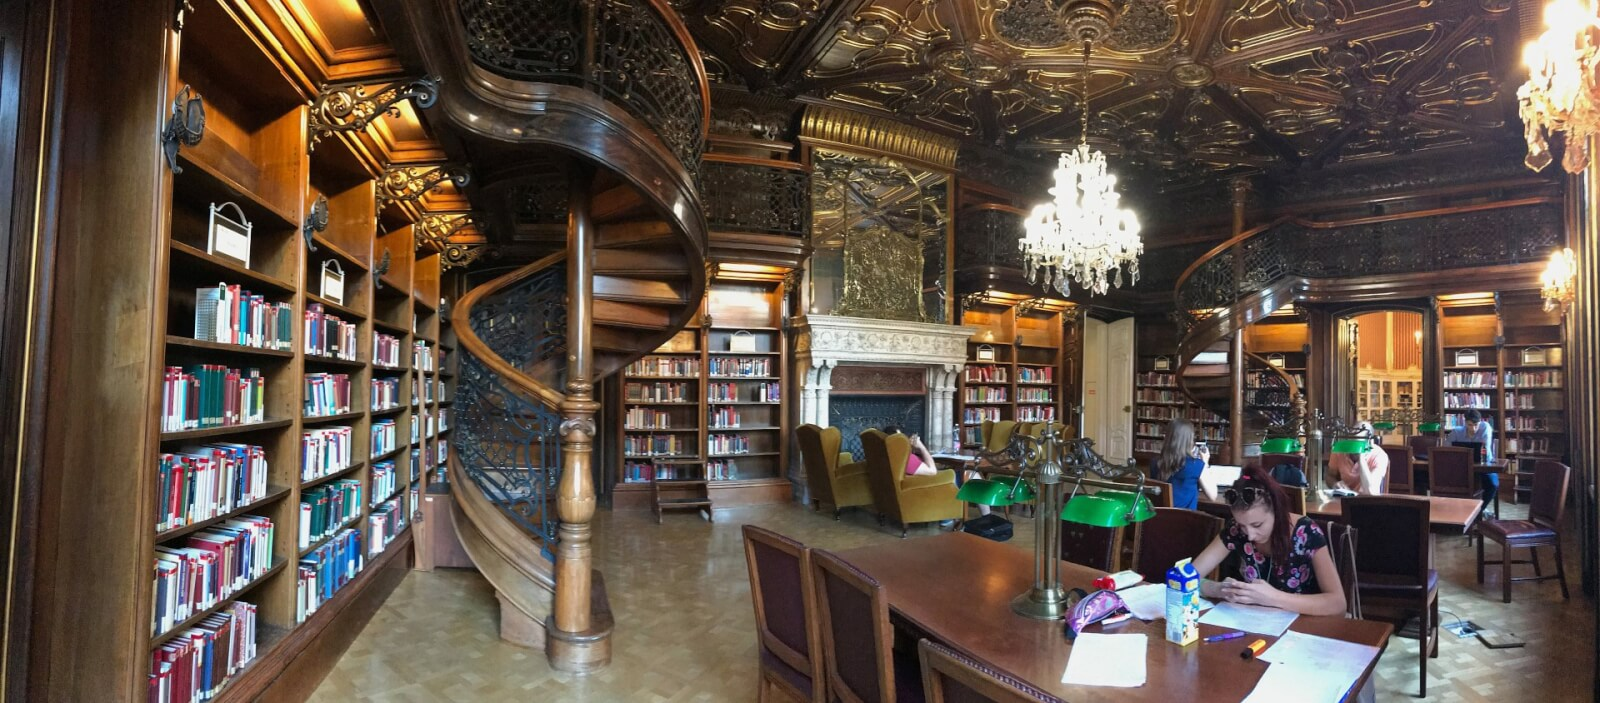 ervin szabo library in budapest hungary